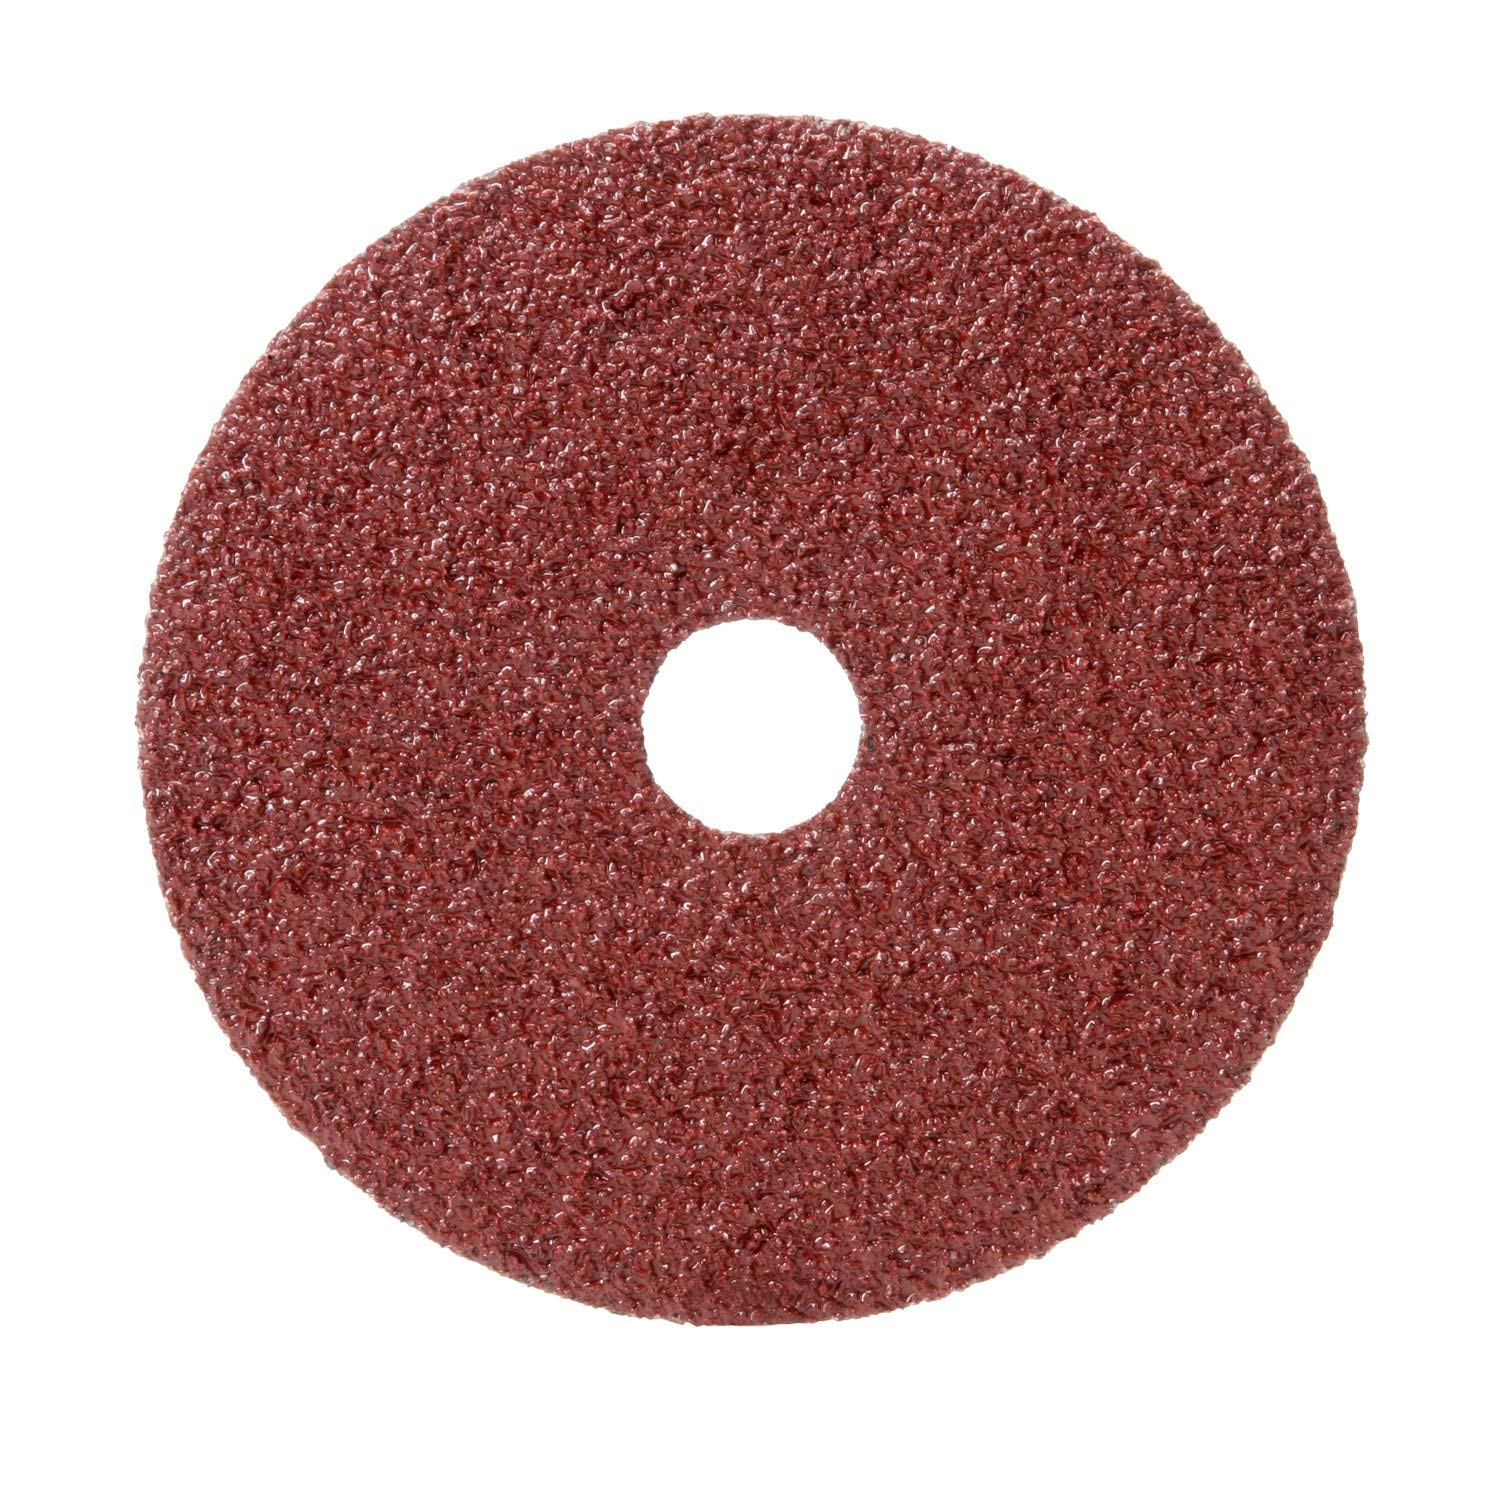 3M Fibre Disc 381C - Metal Oxid Sales of SALE items from new works Aluminum National products Grinding 16 Grit